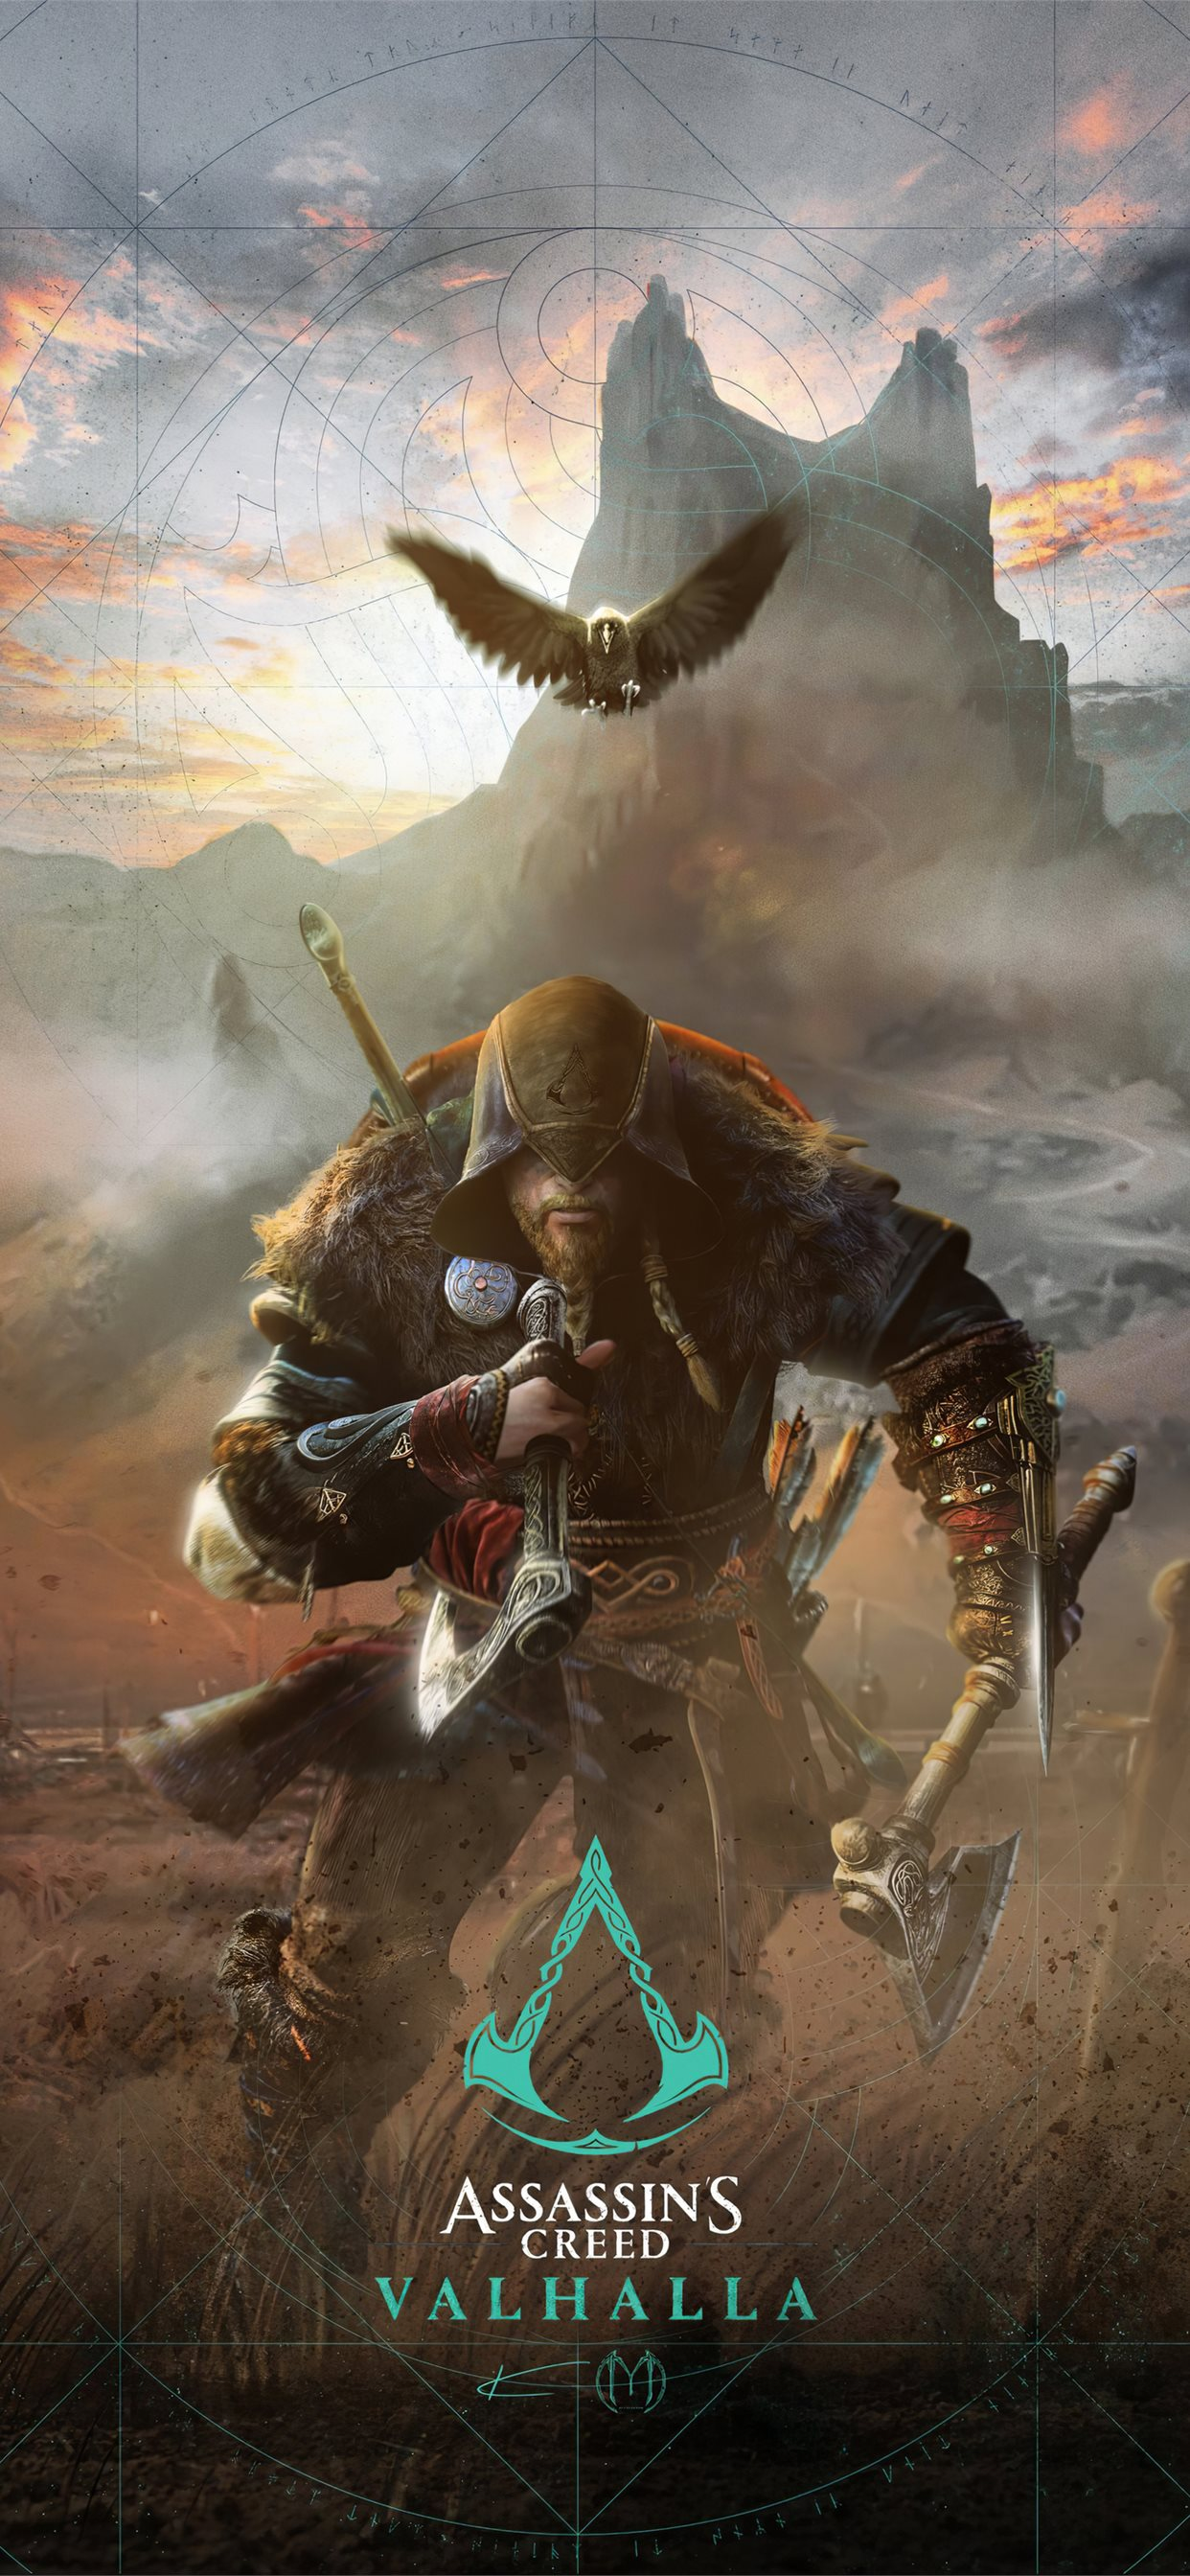 assassins creed valhalla game 2020 iPhone X Wallpapers Download 1242x2688